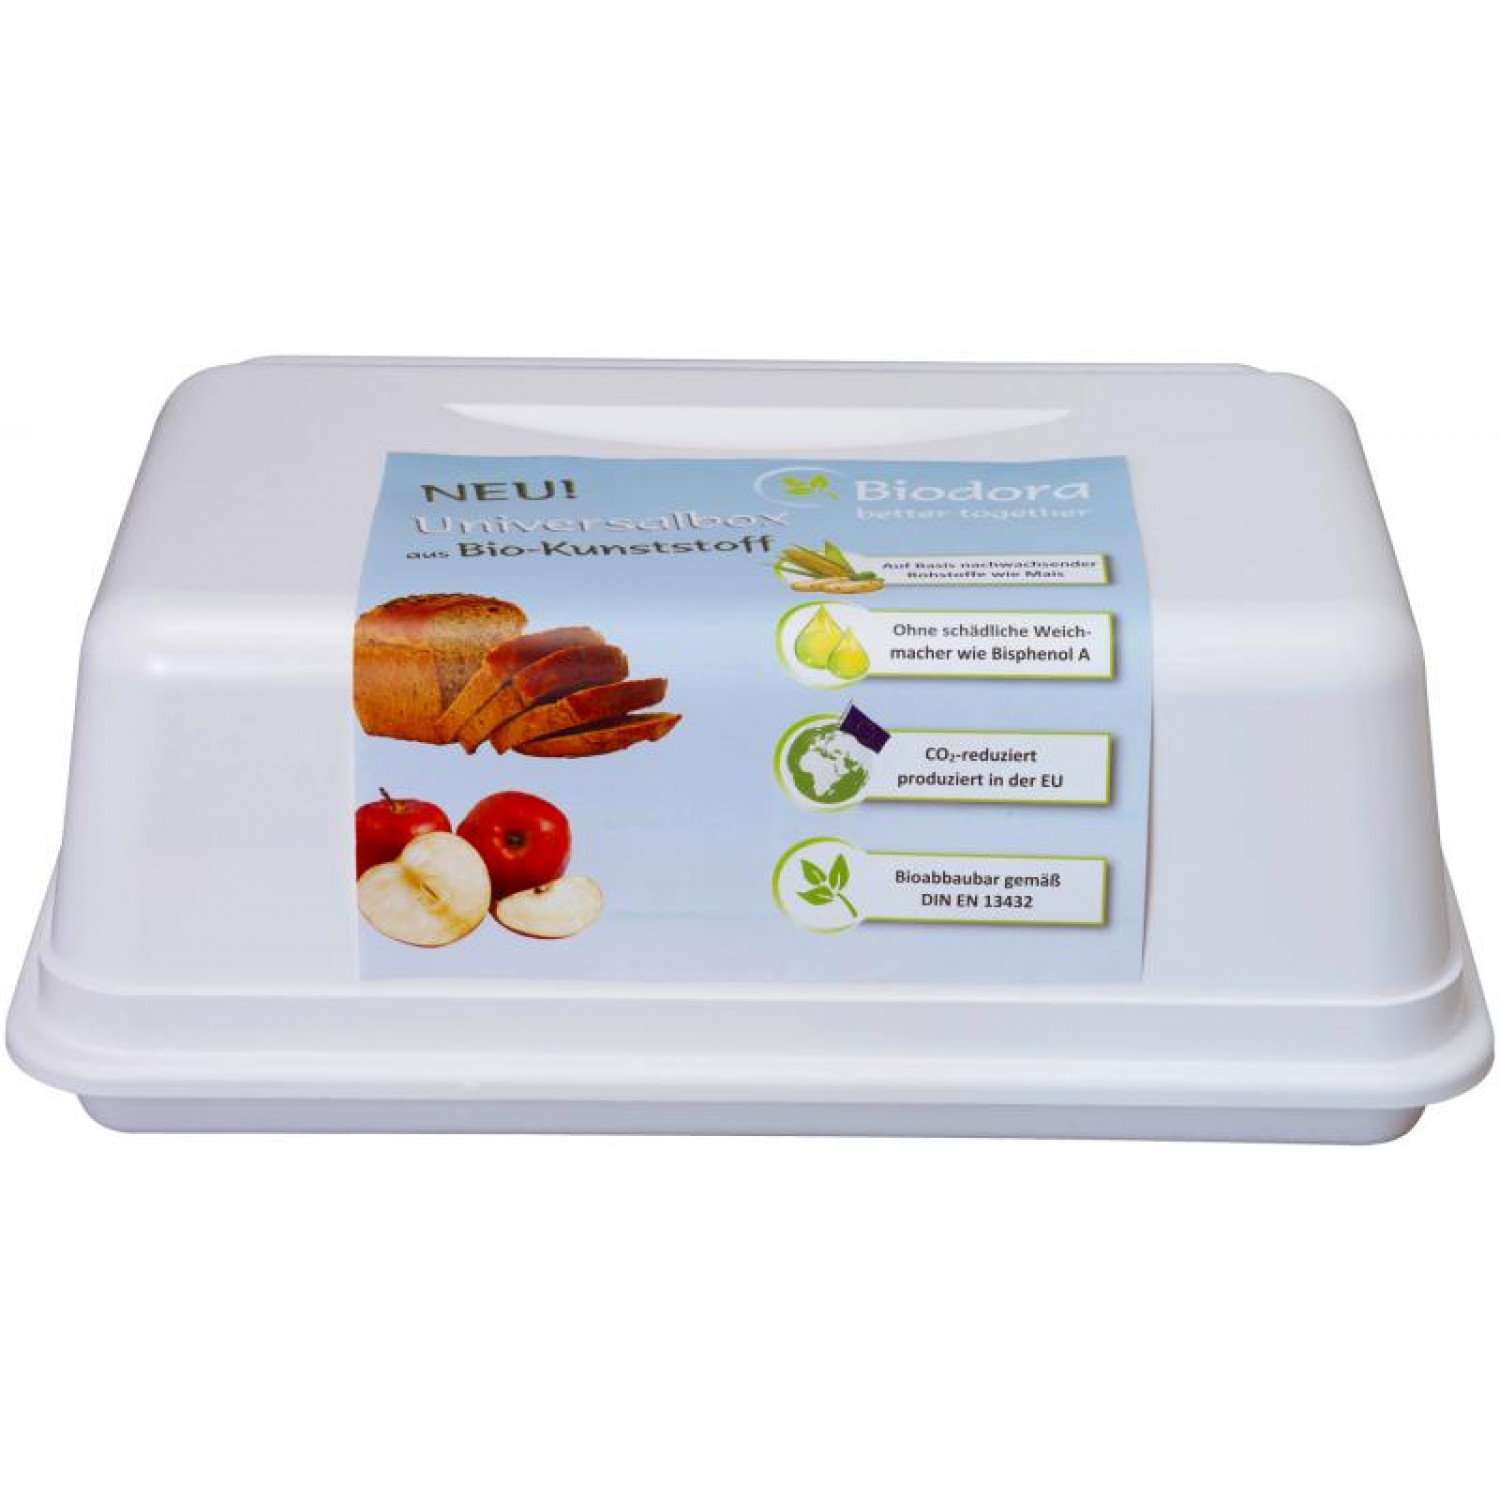 Food storage box of bioplastics from Biodora